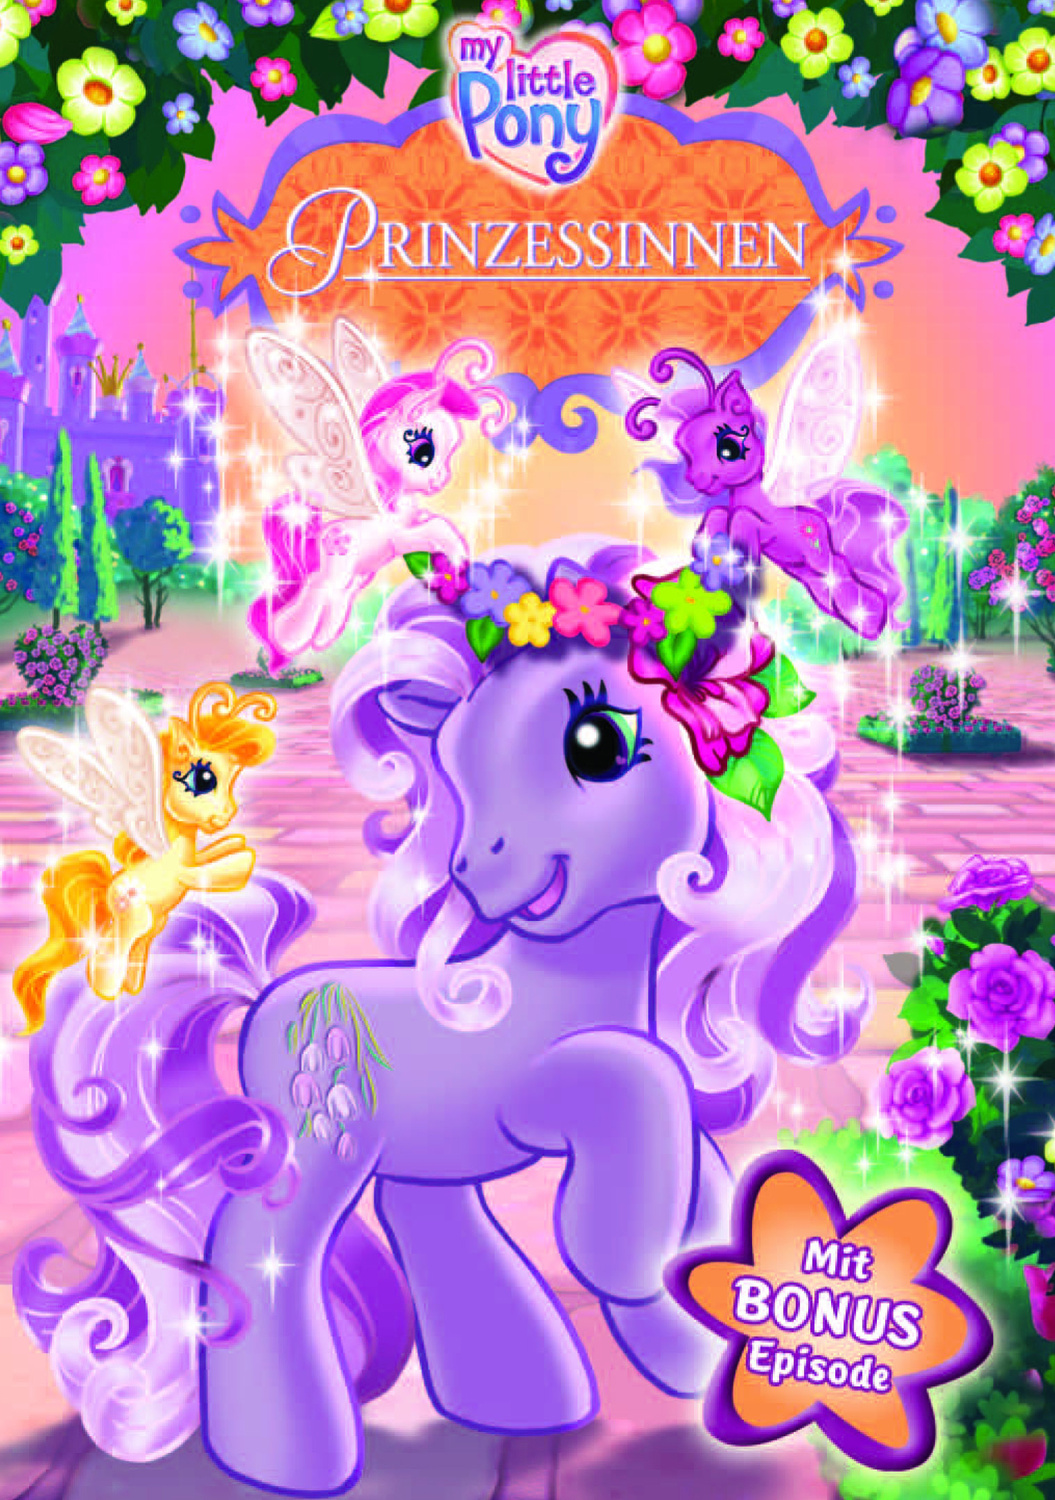 My little Pony 2 - Prinzessinen